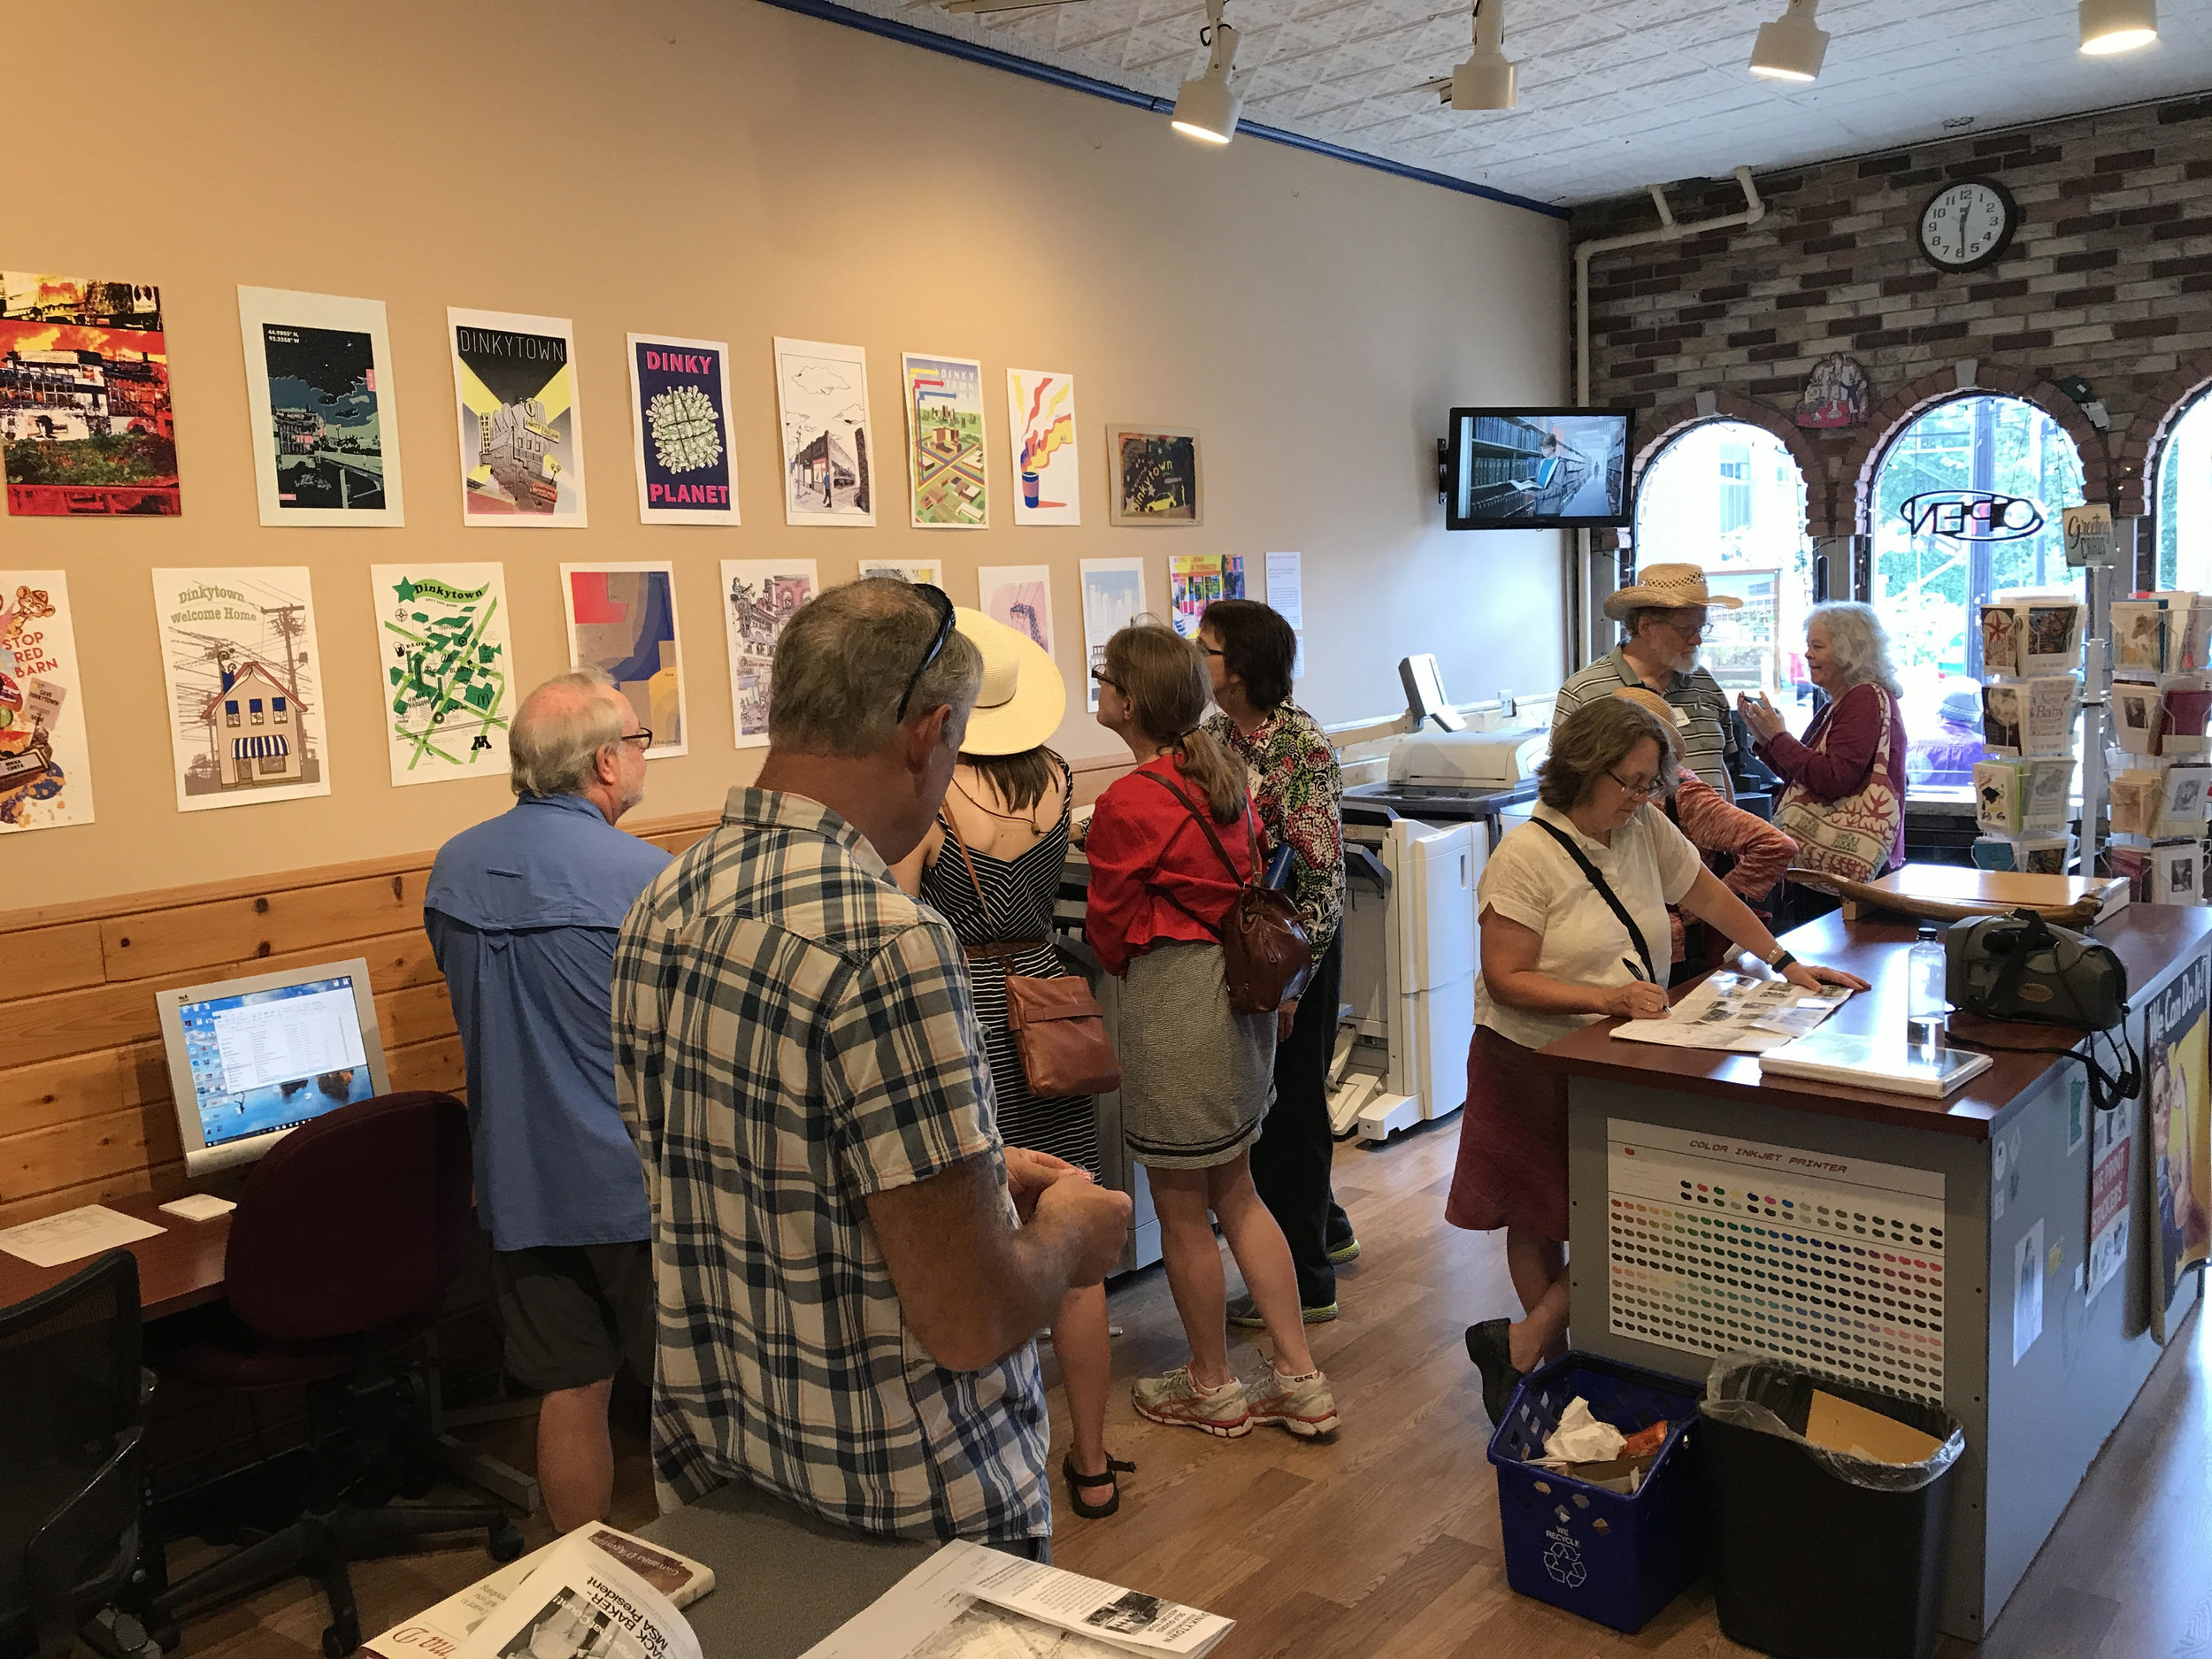 The Dinkytown historic walking tours have been a great success! Stop by Alpha Print and check out the student gallery, Dinkytown Posters: A Sense of Place.  https://lnkd.in/gqzmJbC